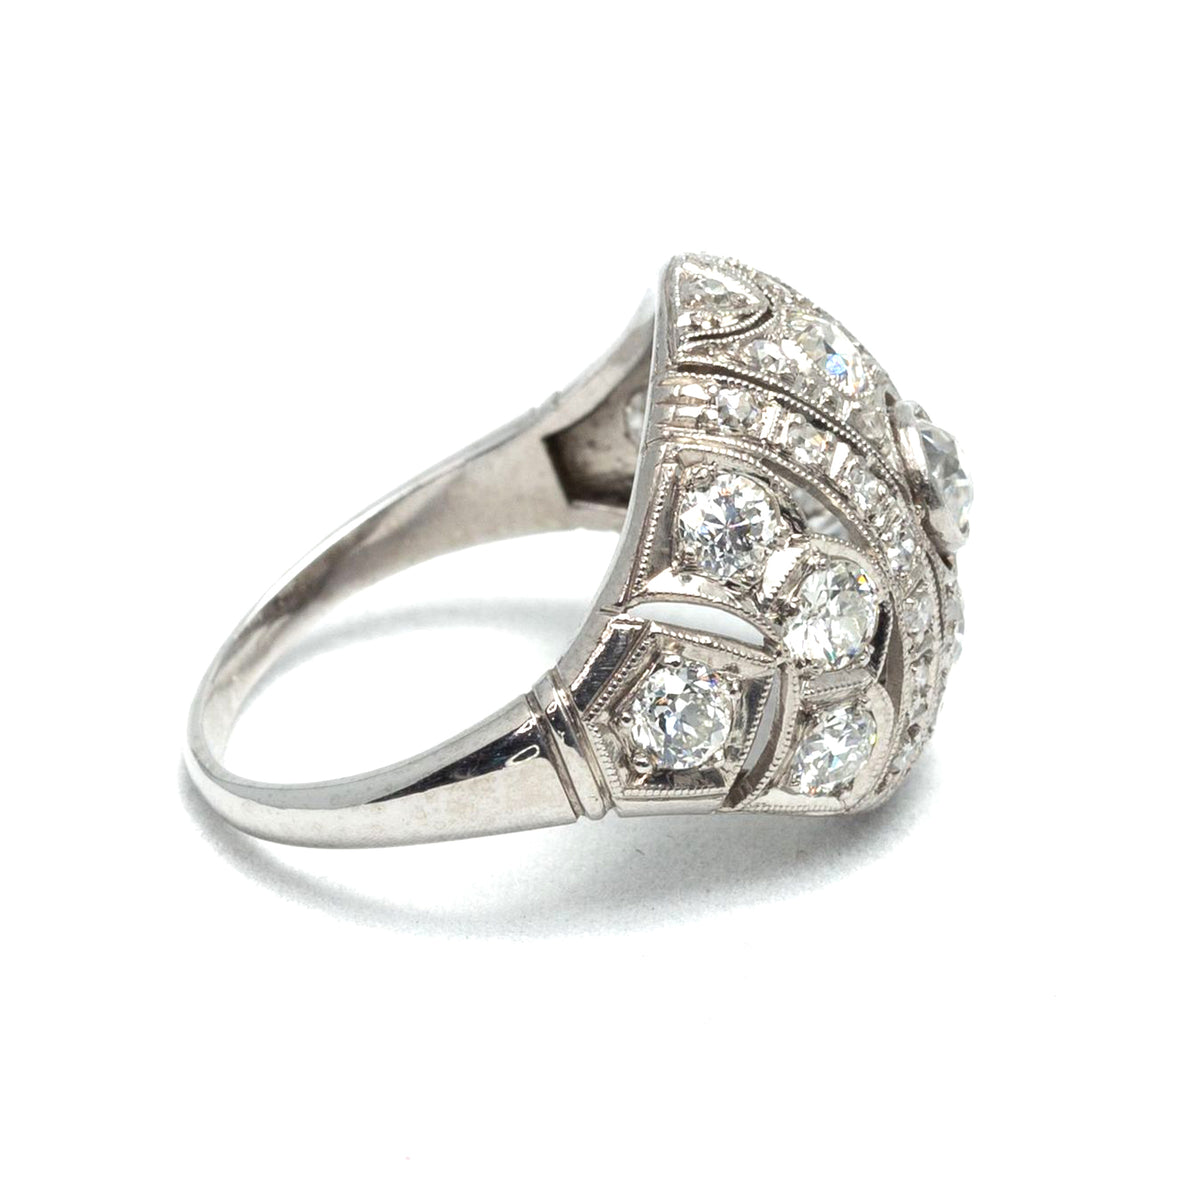 Antique Art Deco Diamond Dome Ring in Platinum